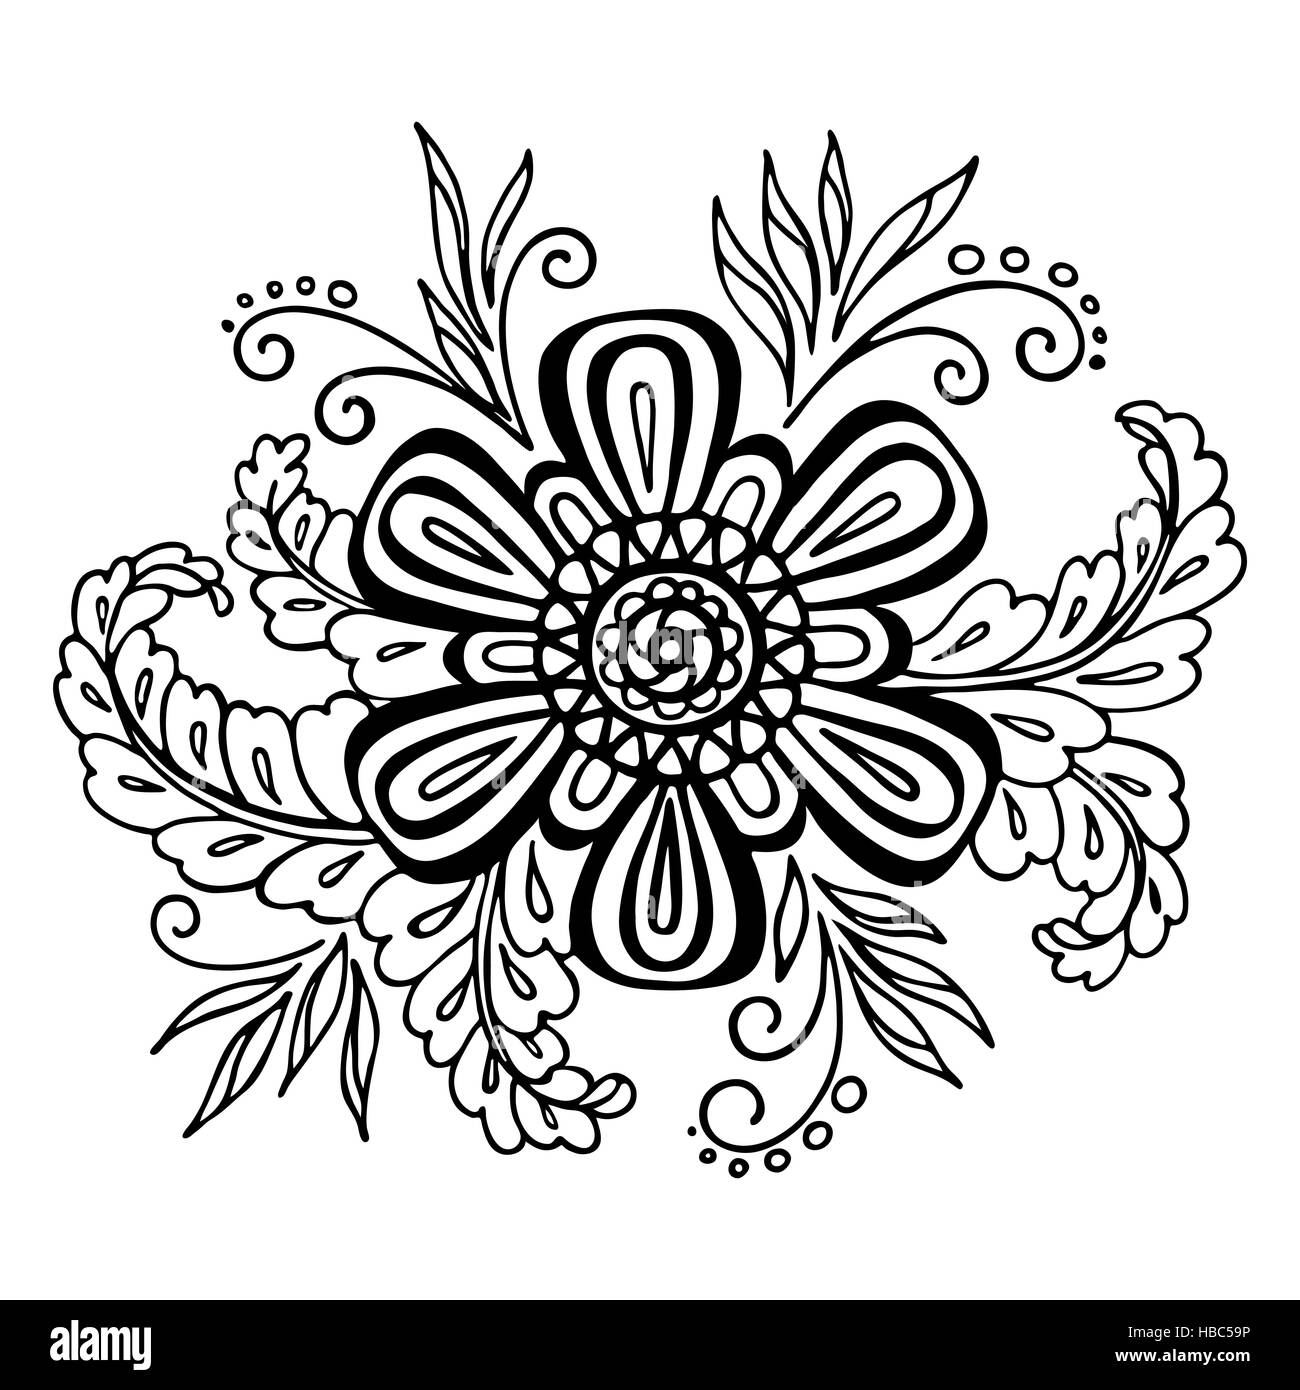 Floral Outline Calligraphic Pattern Stock Photo